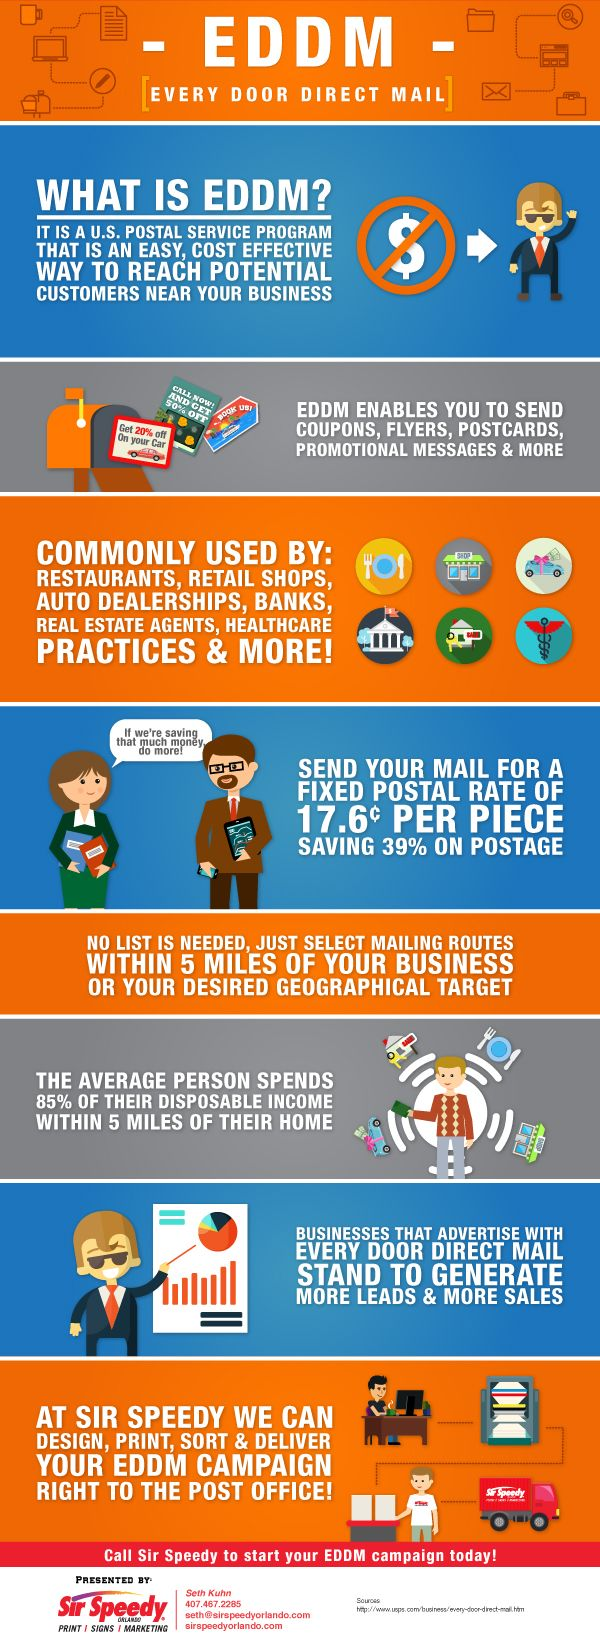 Eddm Every Door Direct Mail Direct Mail Directions Infographic